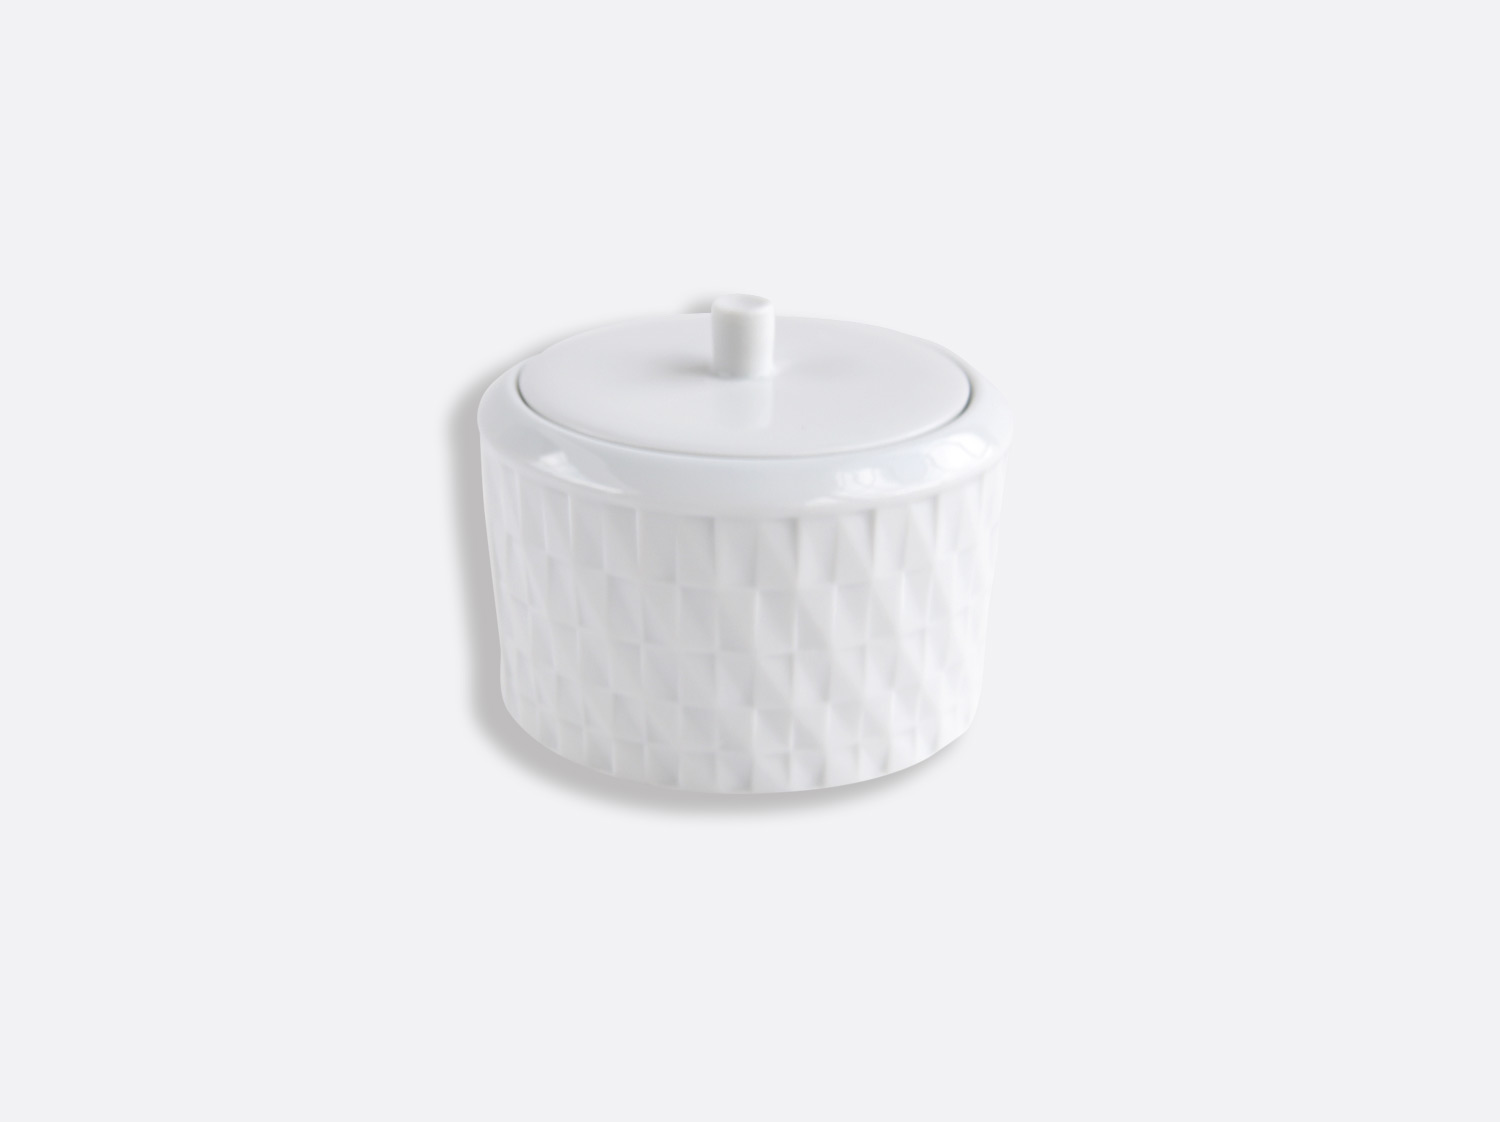 Sucrier 15 cl en porcelaine de la collection Twist Bernardaud